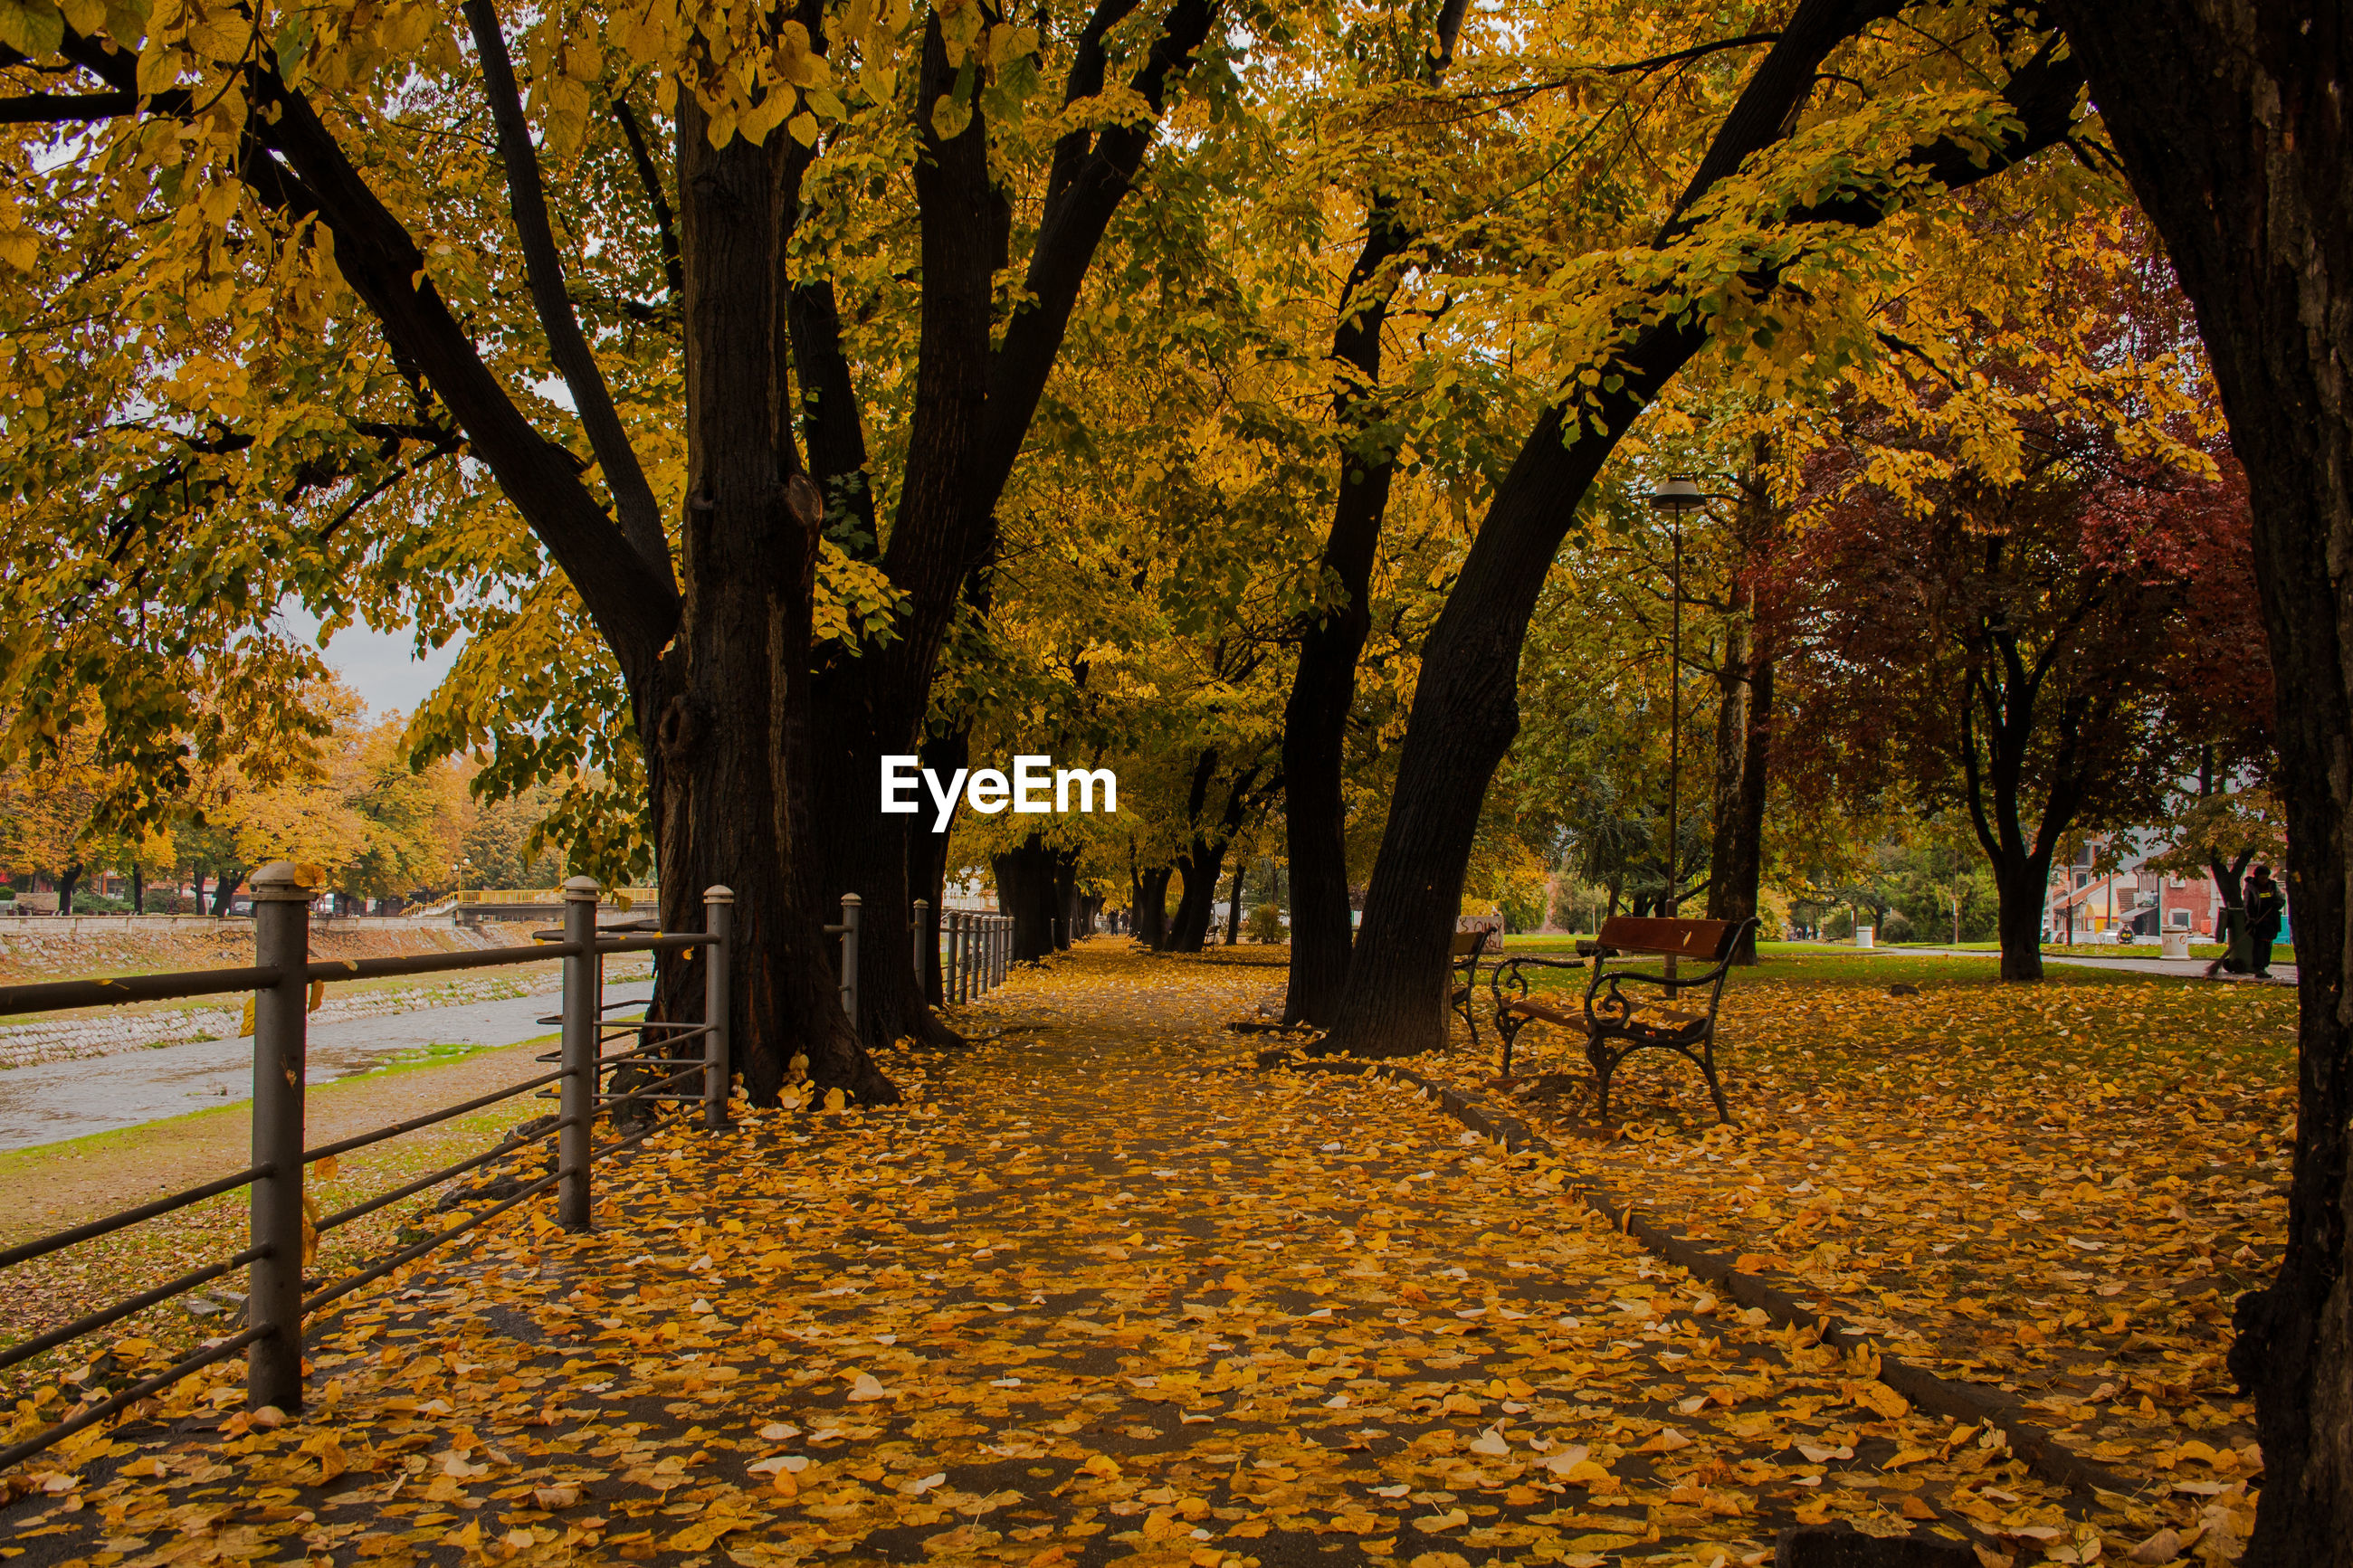 SCENIC VIEW OF AUTUMN TREES IN PARK